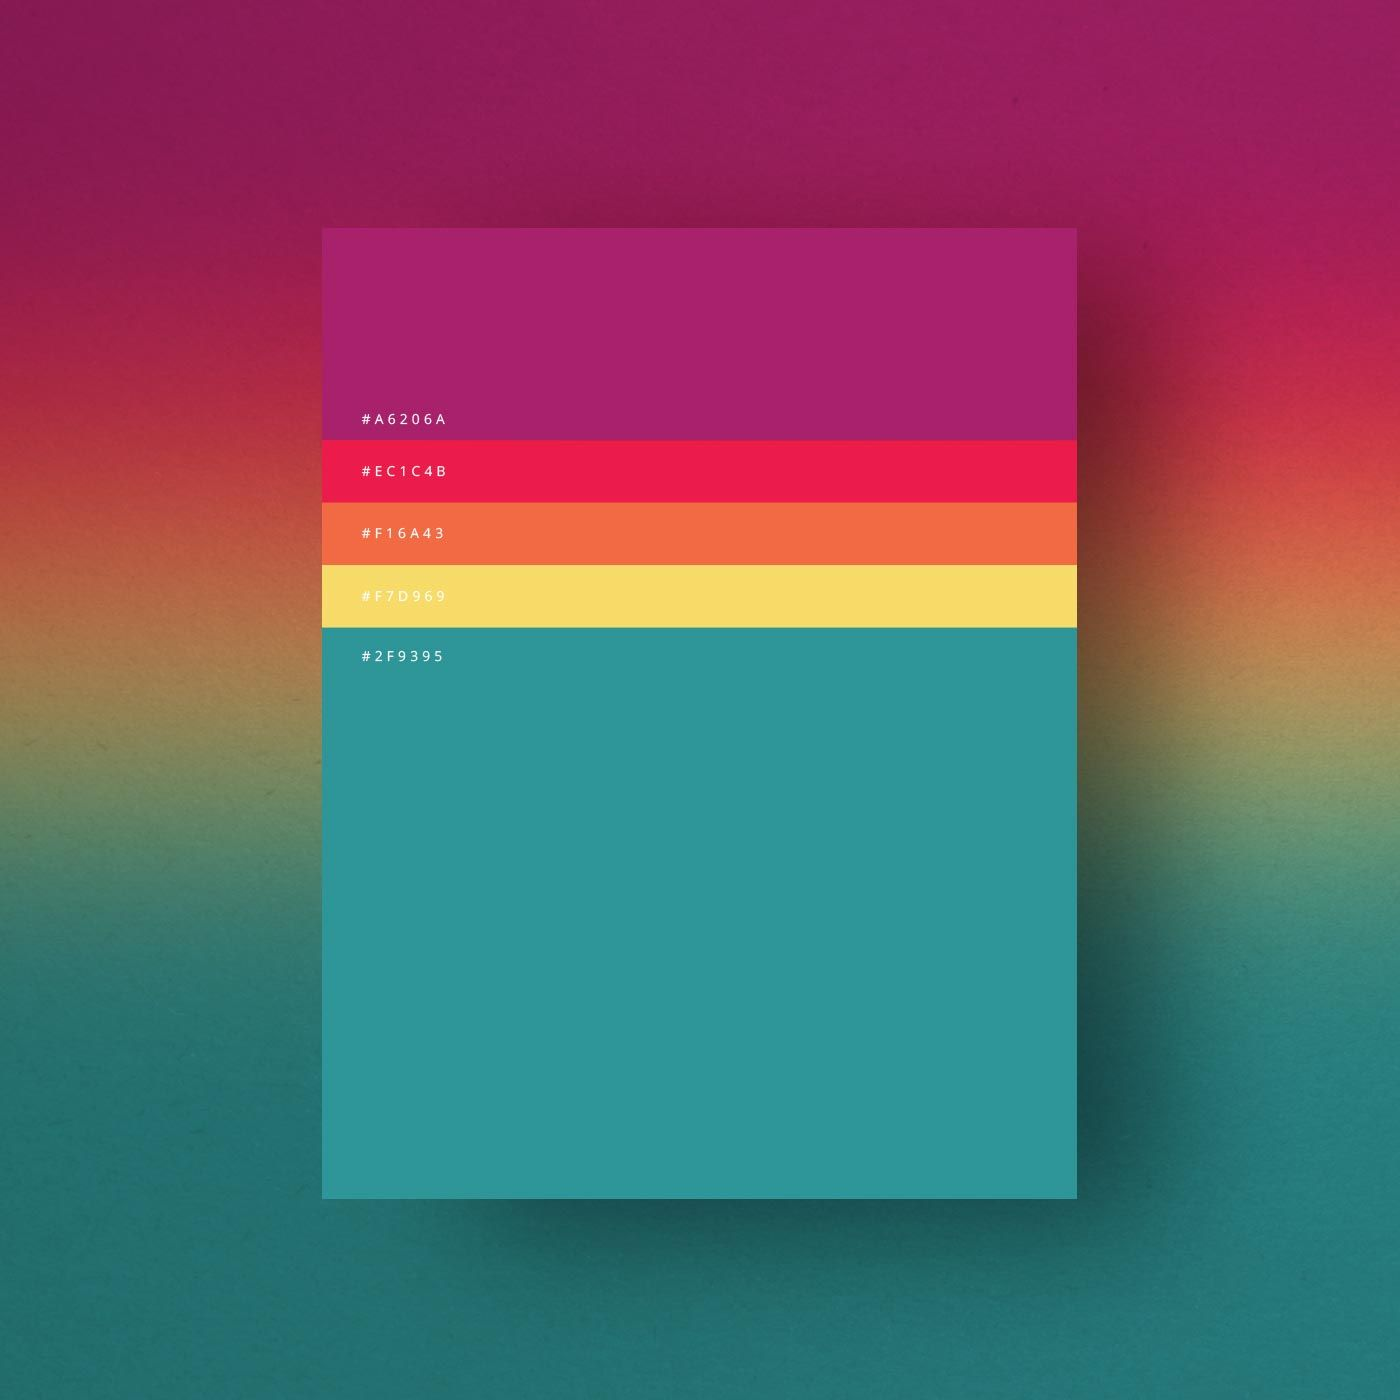 Game boy color palette gimp -  P Italian Creative Agency Dumma Branding Created This Gorgeous Minimalist Color Palette Collection Of